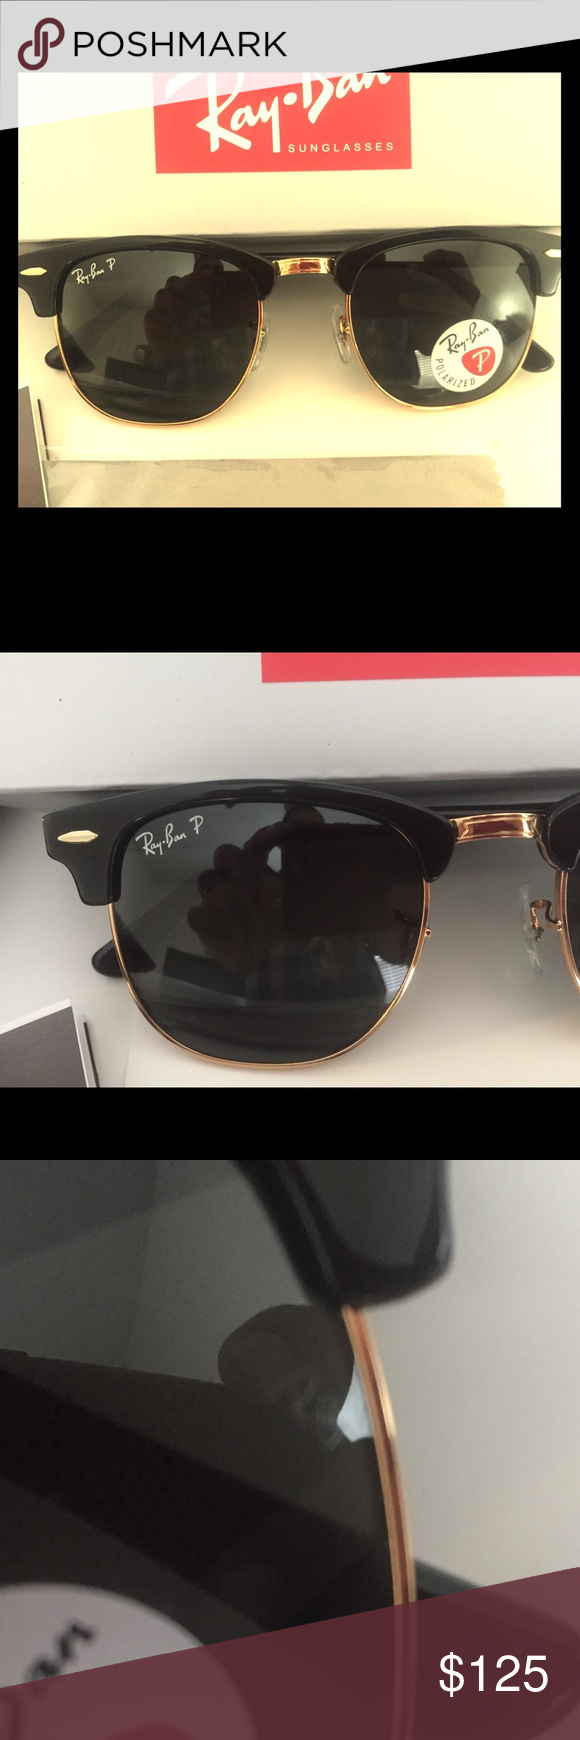 3c4254aa0c Ray Ban Clubmaster RB3016 Black Polarized G-15 len Brand new and authentic  Ray